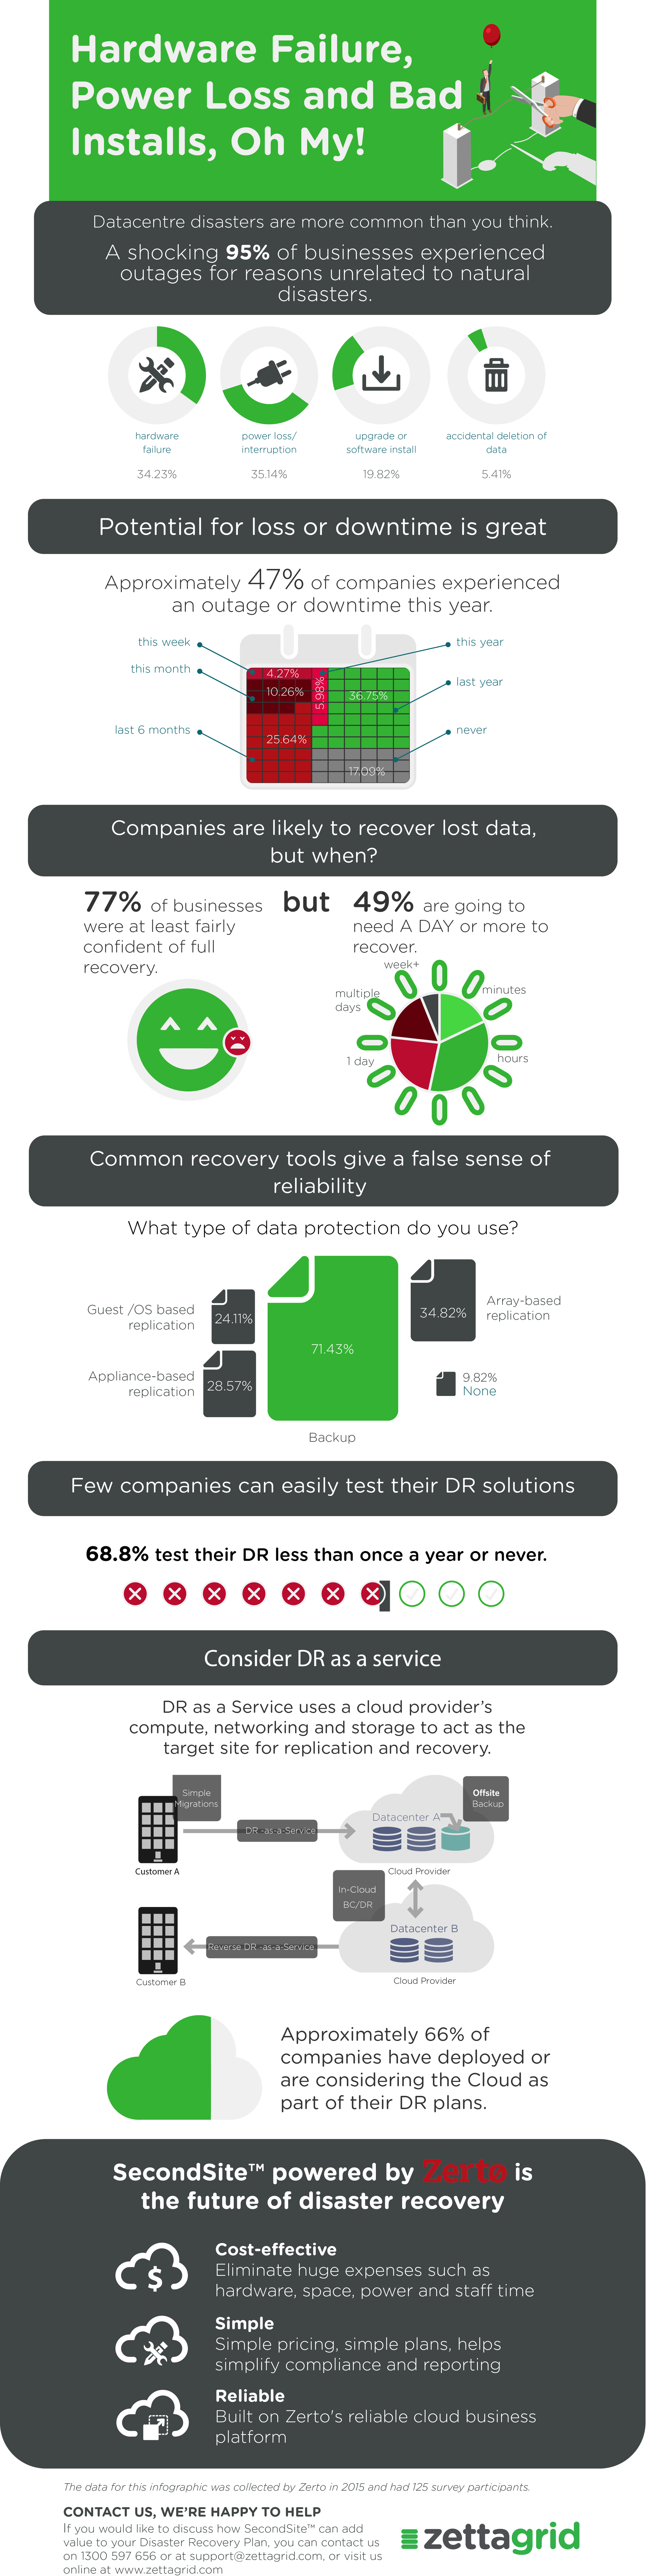 disaster recovery, business continuity, DRaaS, RaaS